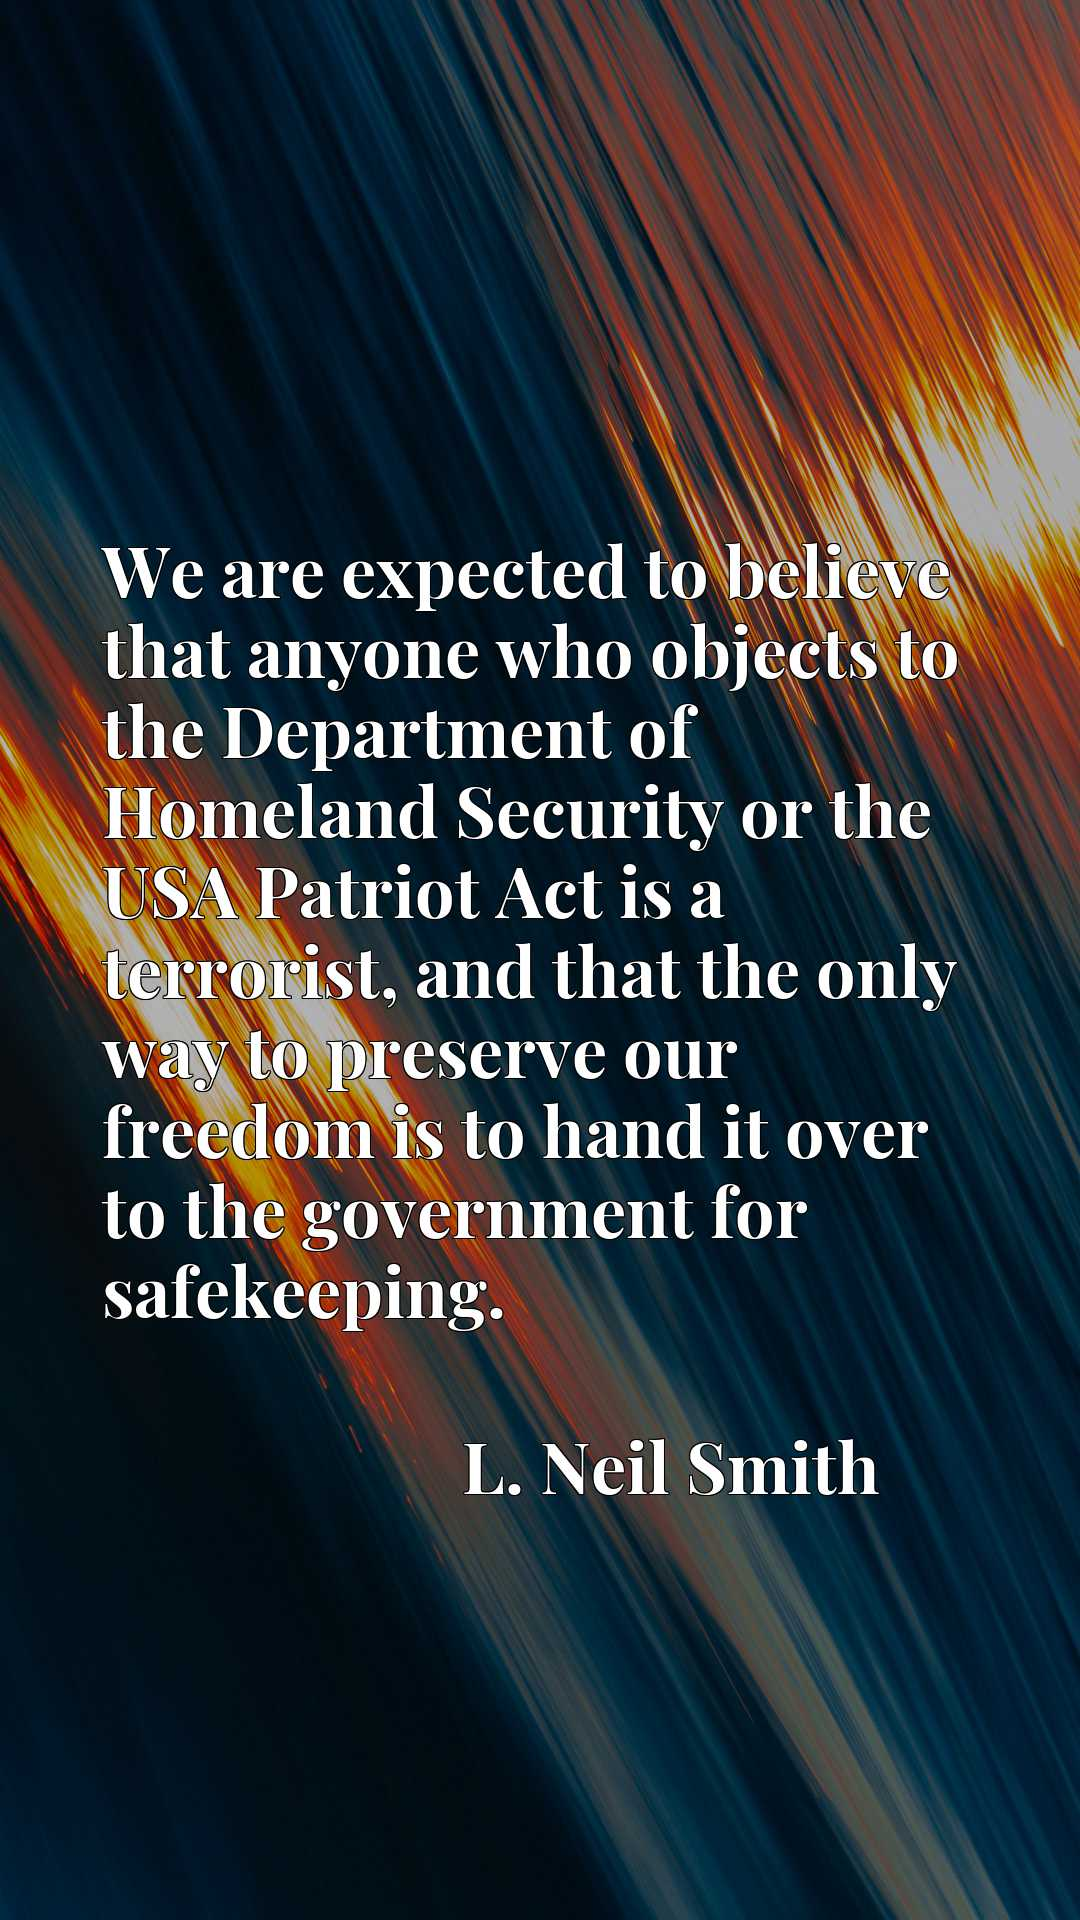 We are expected to believe that anyone who objects to the Department of Homeland Security or the USA Patriot Act is a terrorist, and that the only way to preserve our freedom is to hand it over to the government for safekeeping.